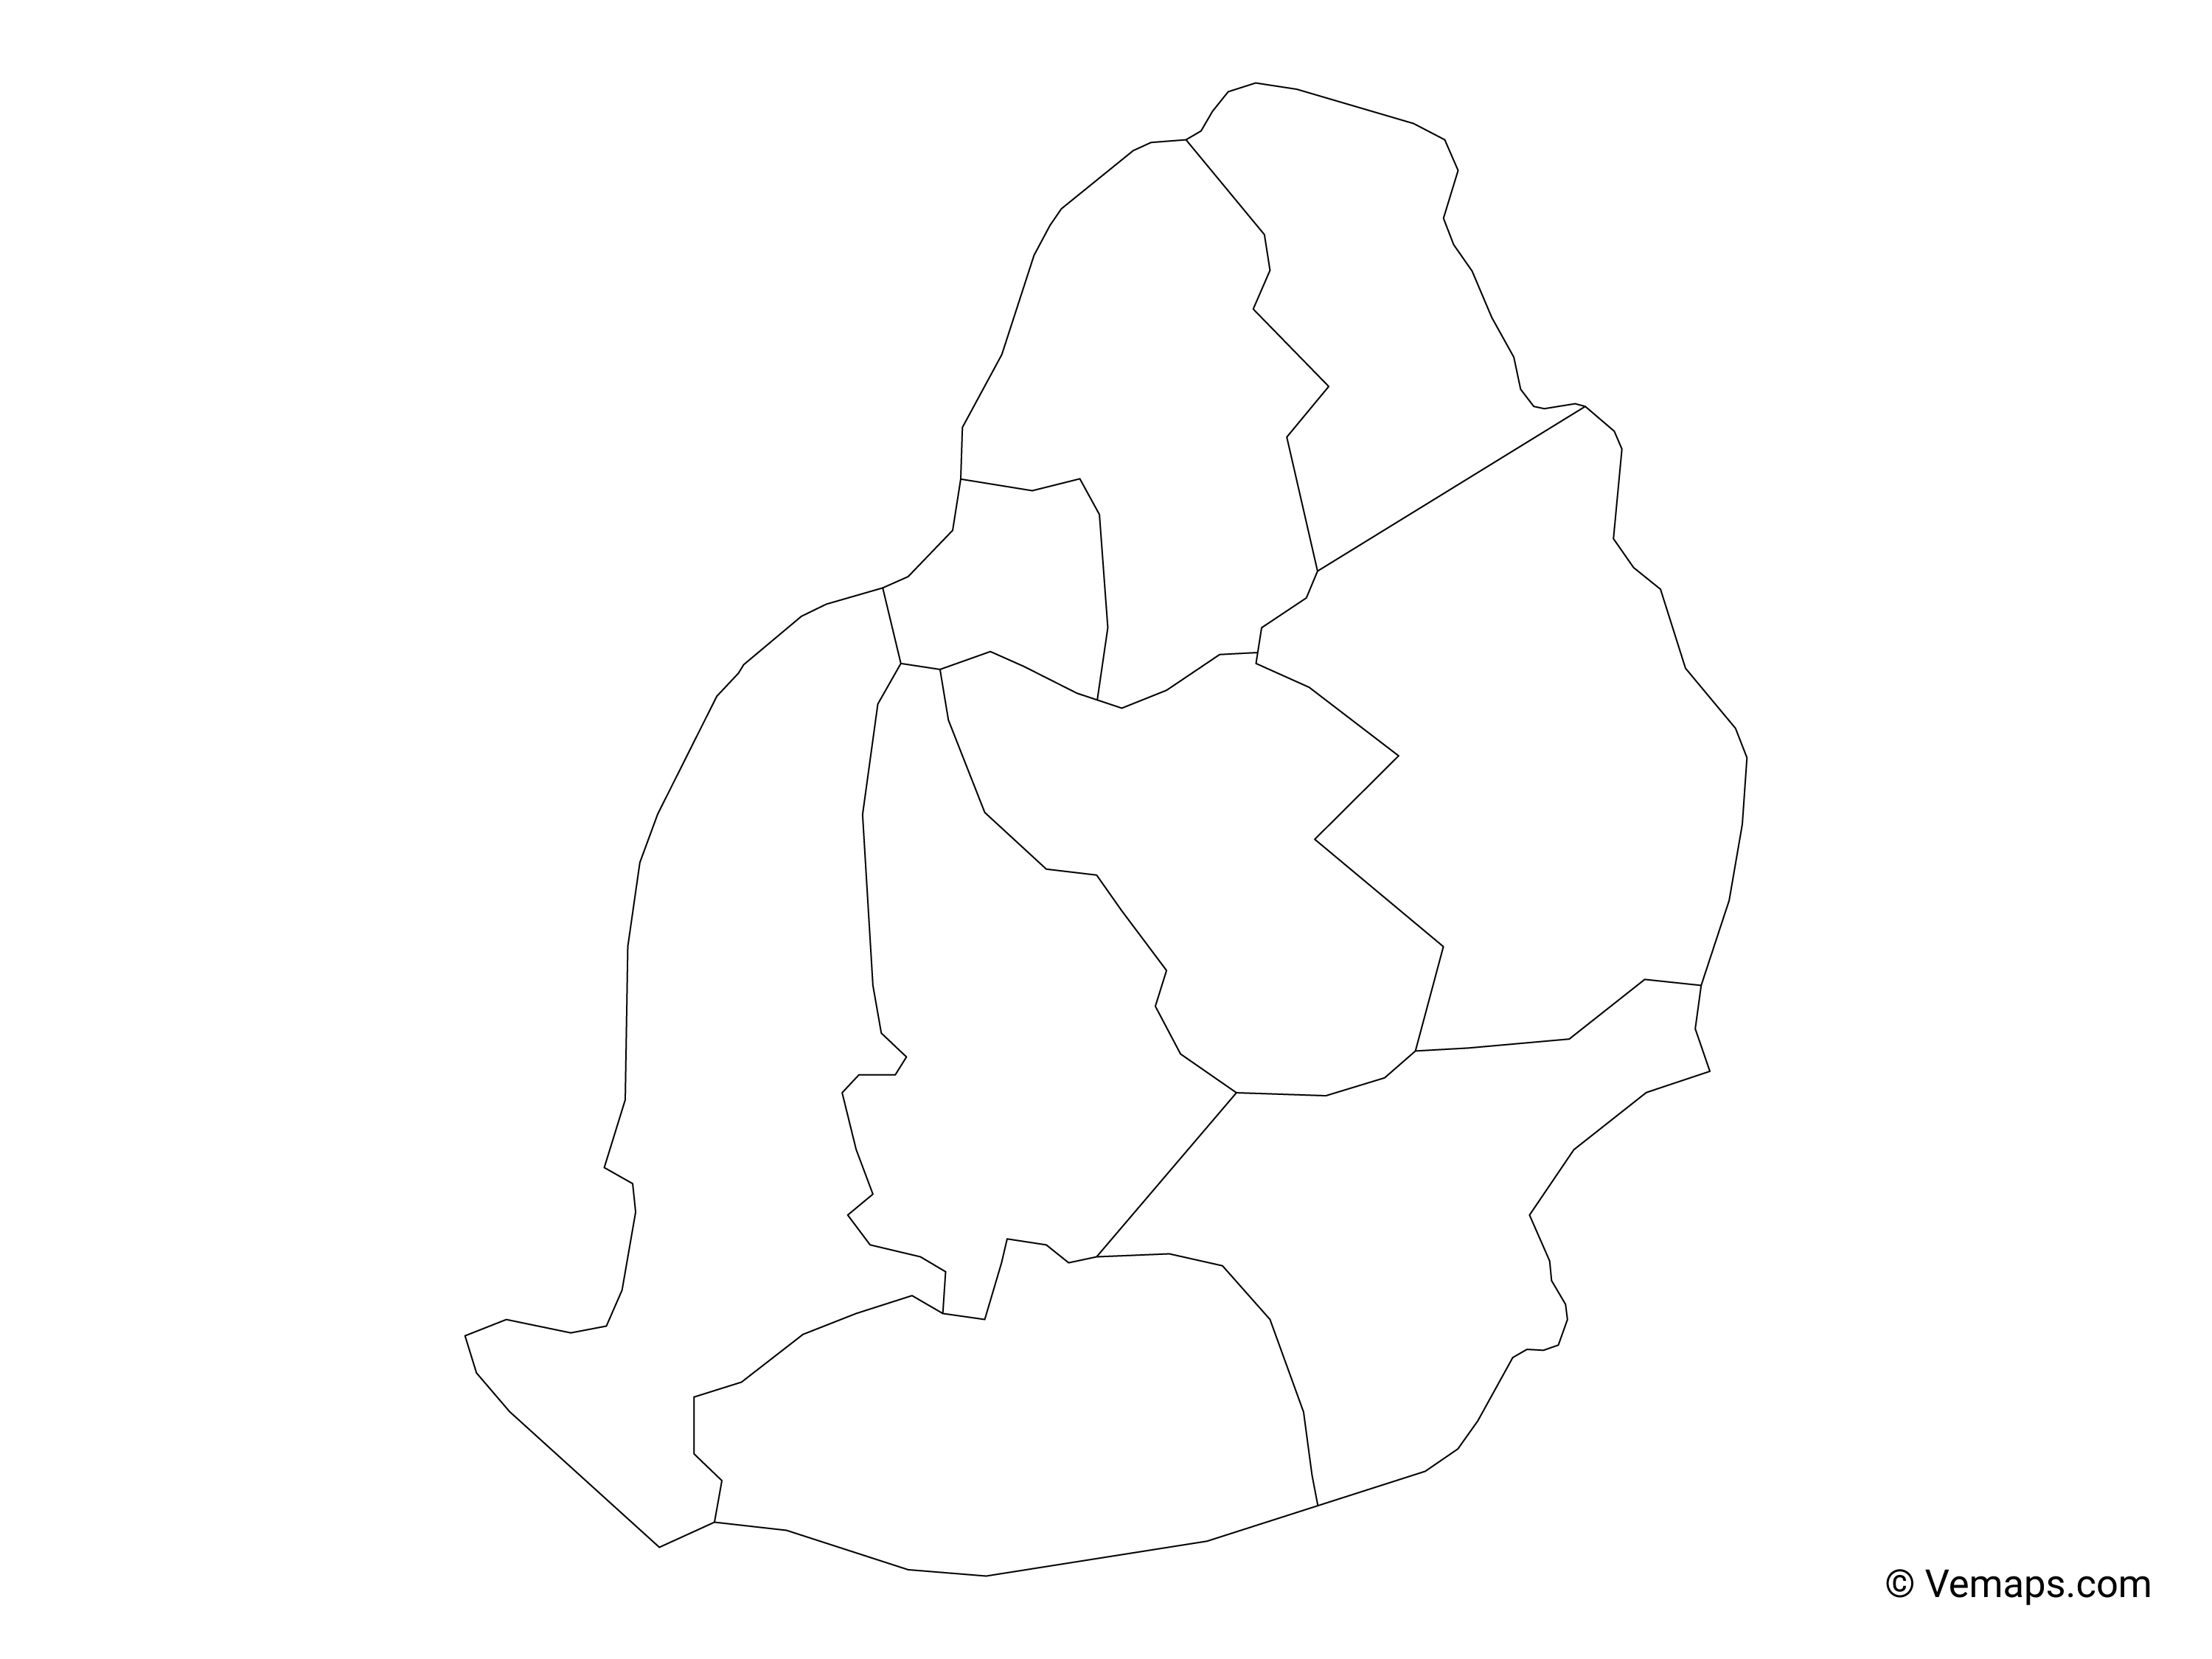 Outline Map of Mauritius with Districts | Free Vector Maps